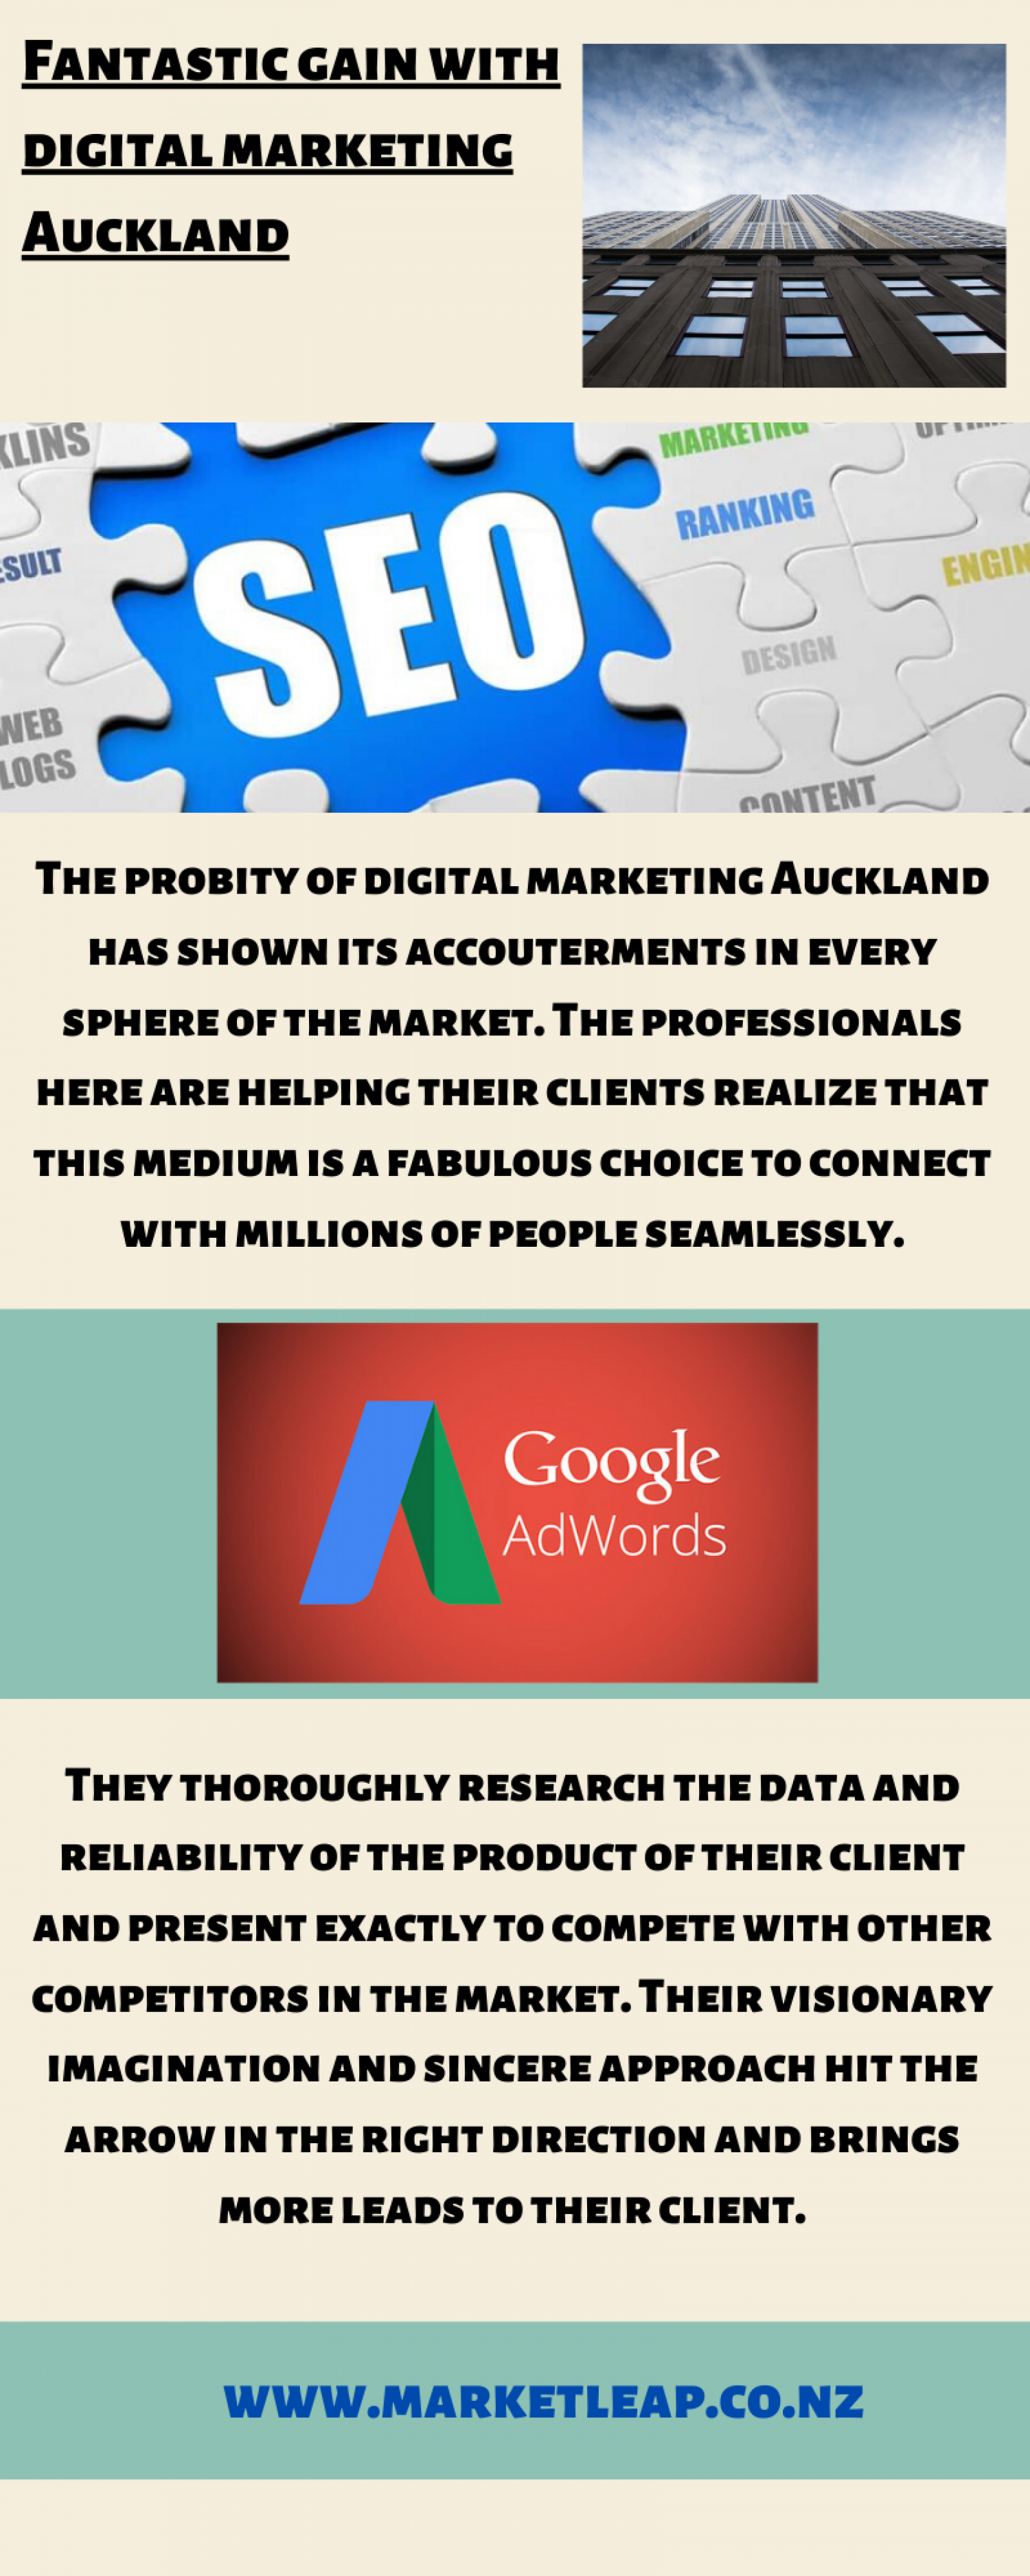 Digital marketing in Auckland Infographic